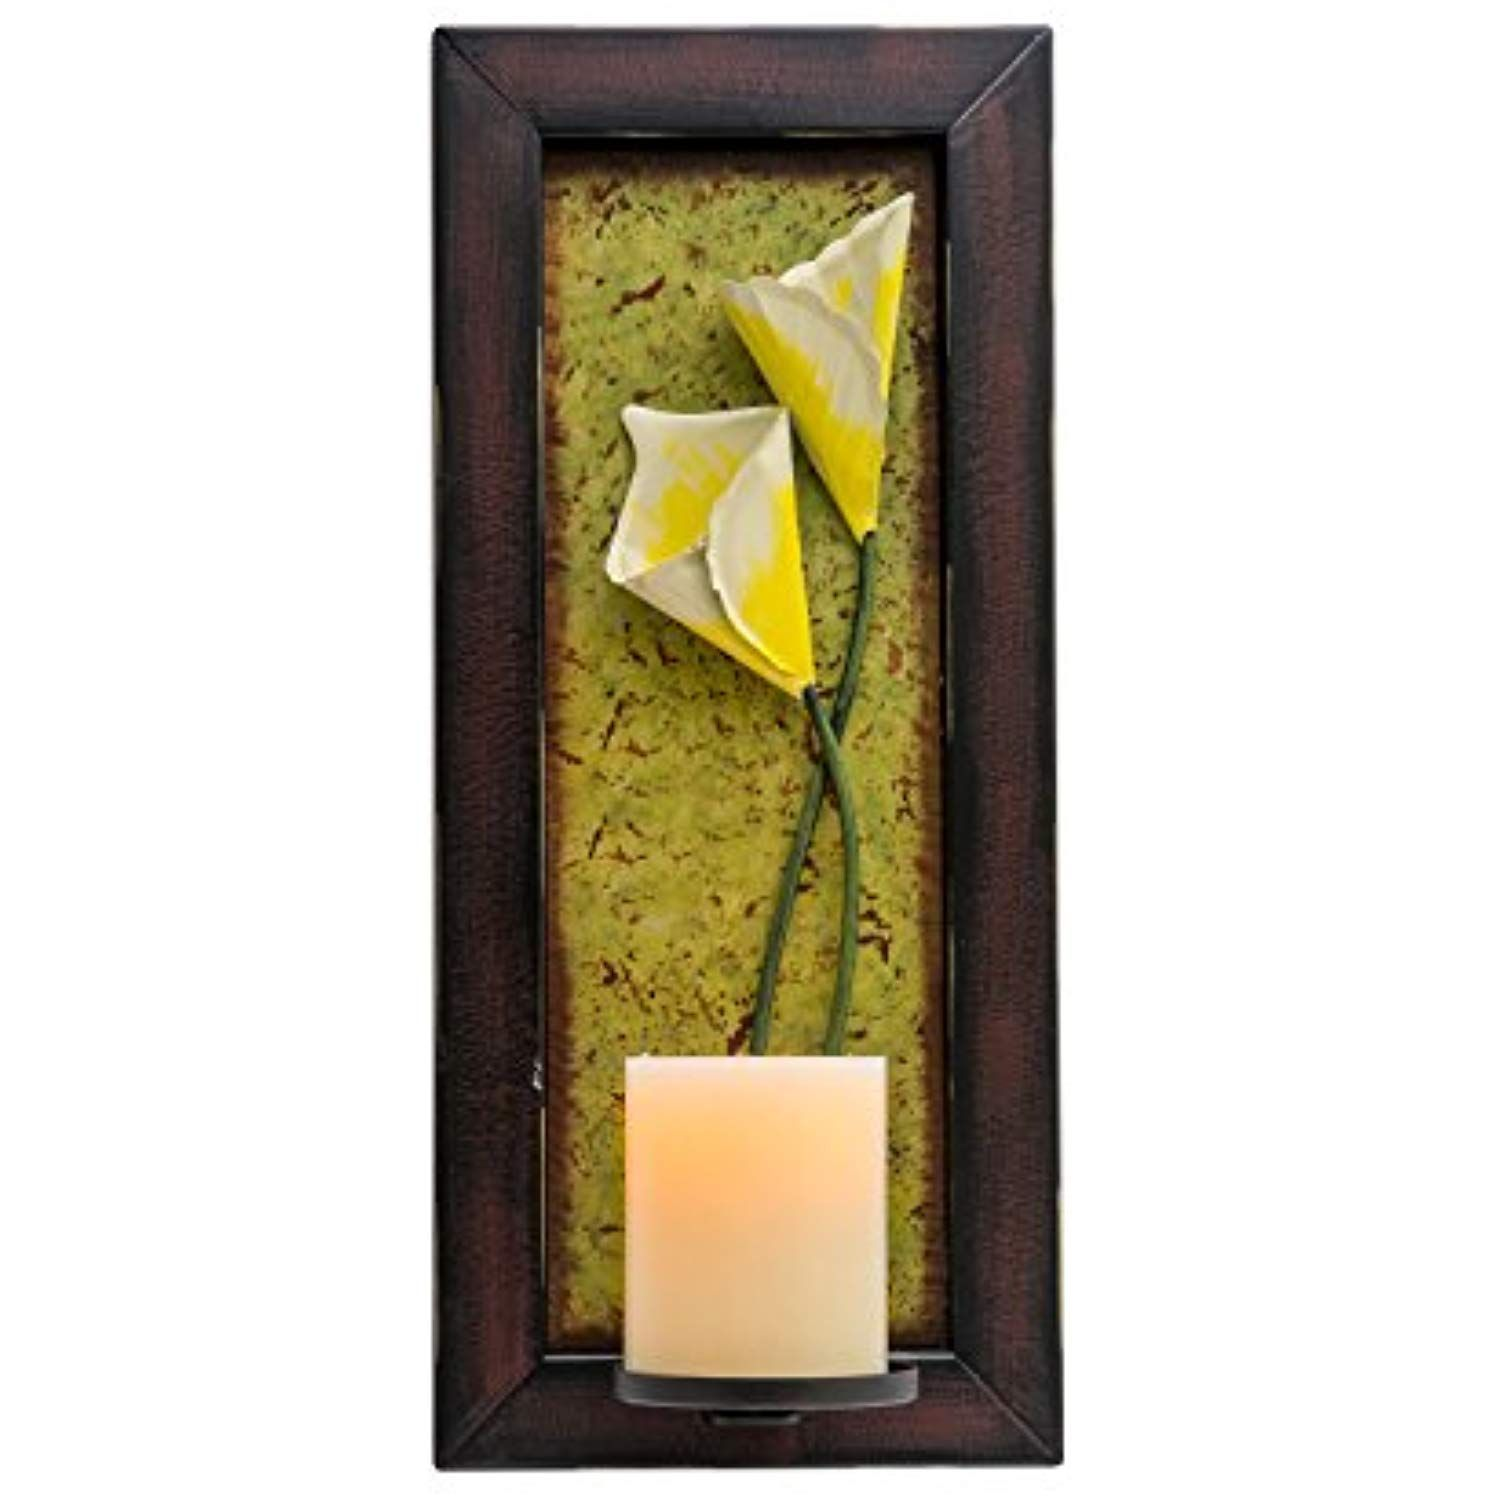 Candle Impressions Floral Wall Sconce With Real Wax Flameless Candle Included Click Image To Review More Details Candle Impressions Wall Sconces Floral Wall